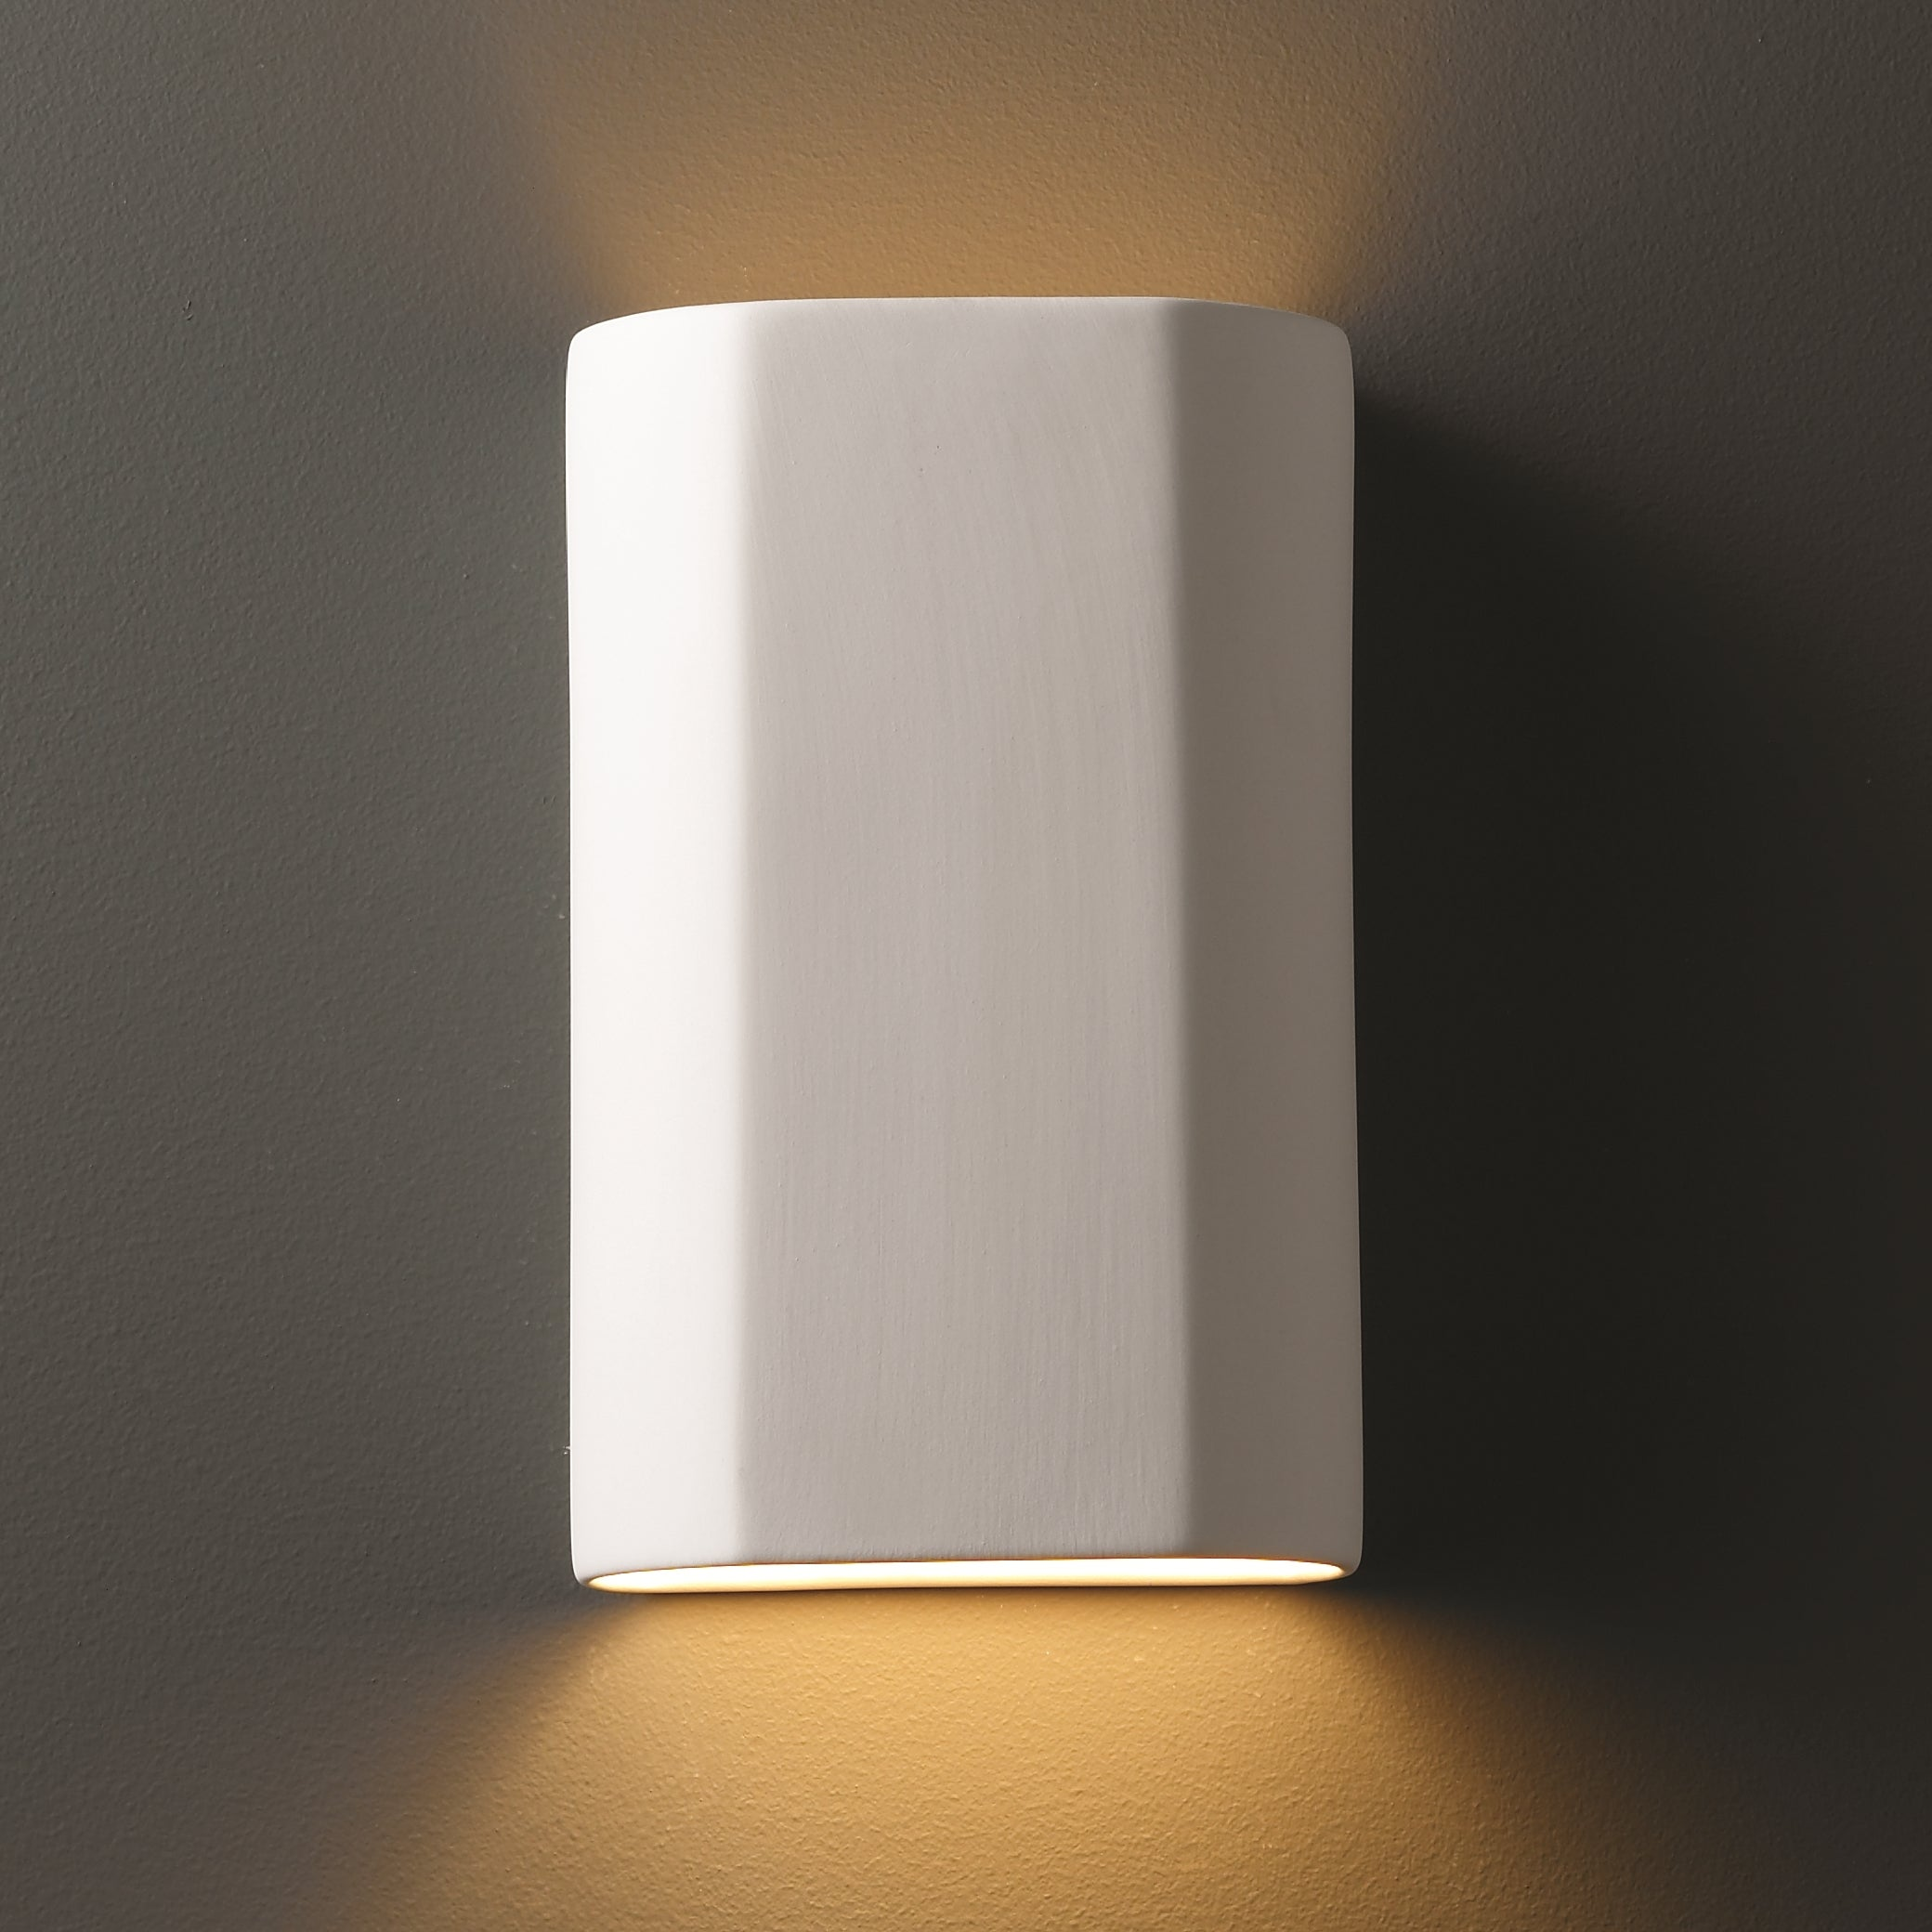 Clay Alder Home Anoka Cylindrical Ceramic Bisque 1 Light Ada Wall